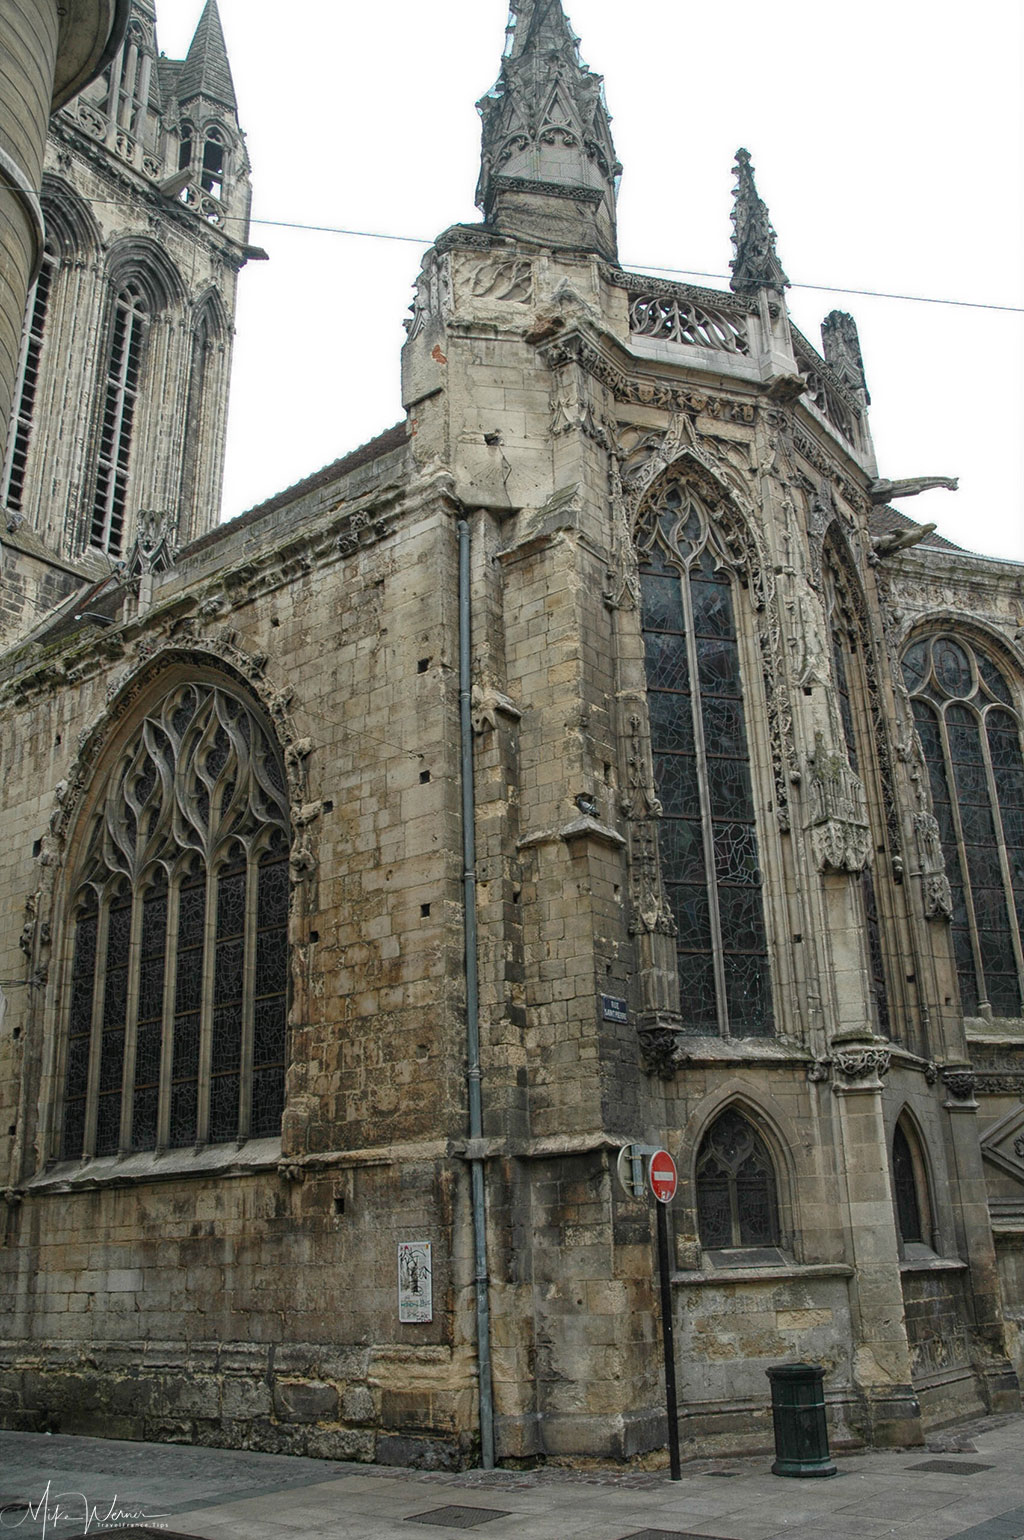 Today - The Saint-Sauveur church in Caen